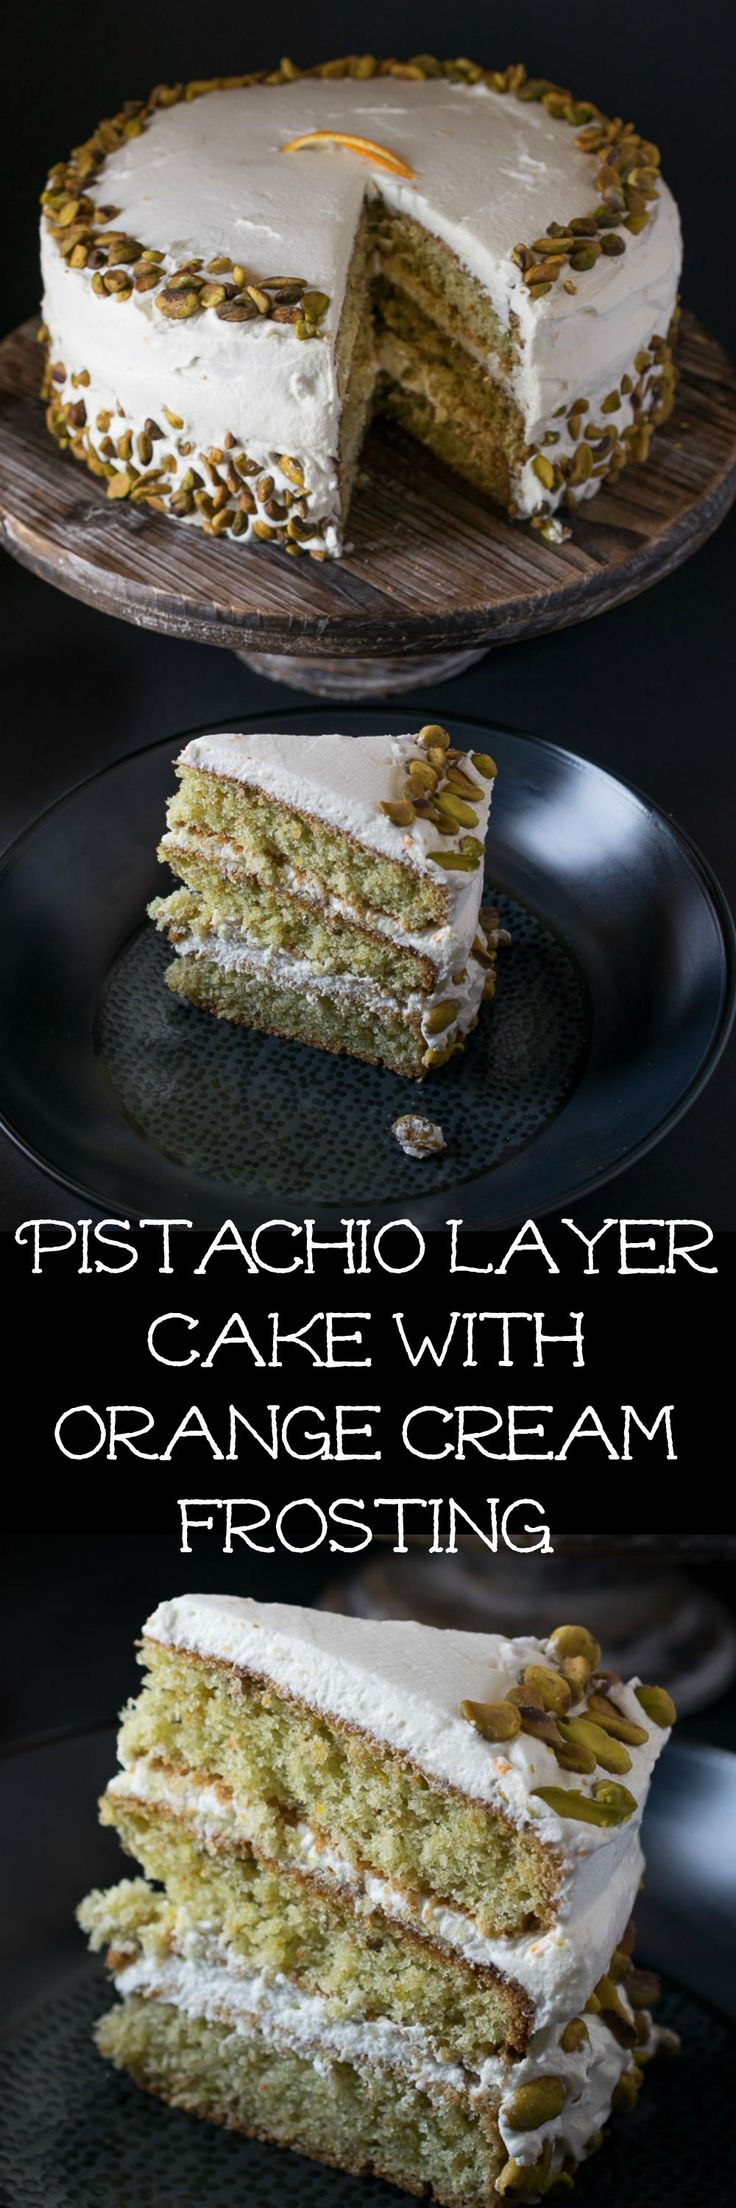 Pistachio layer cake with orange cream frosting has ground pistachios as well as pistachio extract in the cake itself, just to drive home the pistachio flavor. The frosting is fluffy, whipped cream with fresh orange zest. Together, this pairing makes for a heavenly combination!